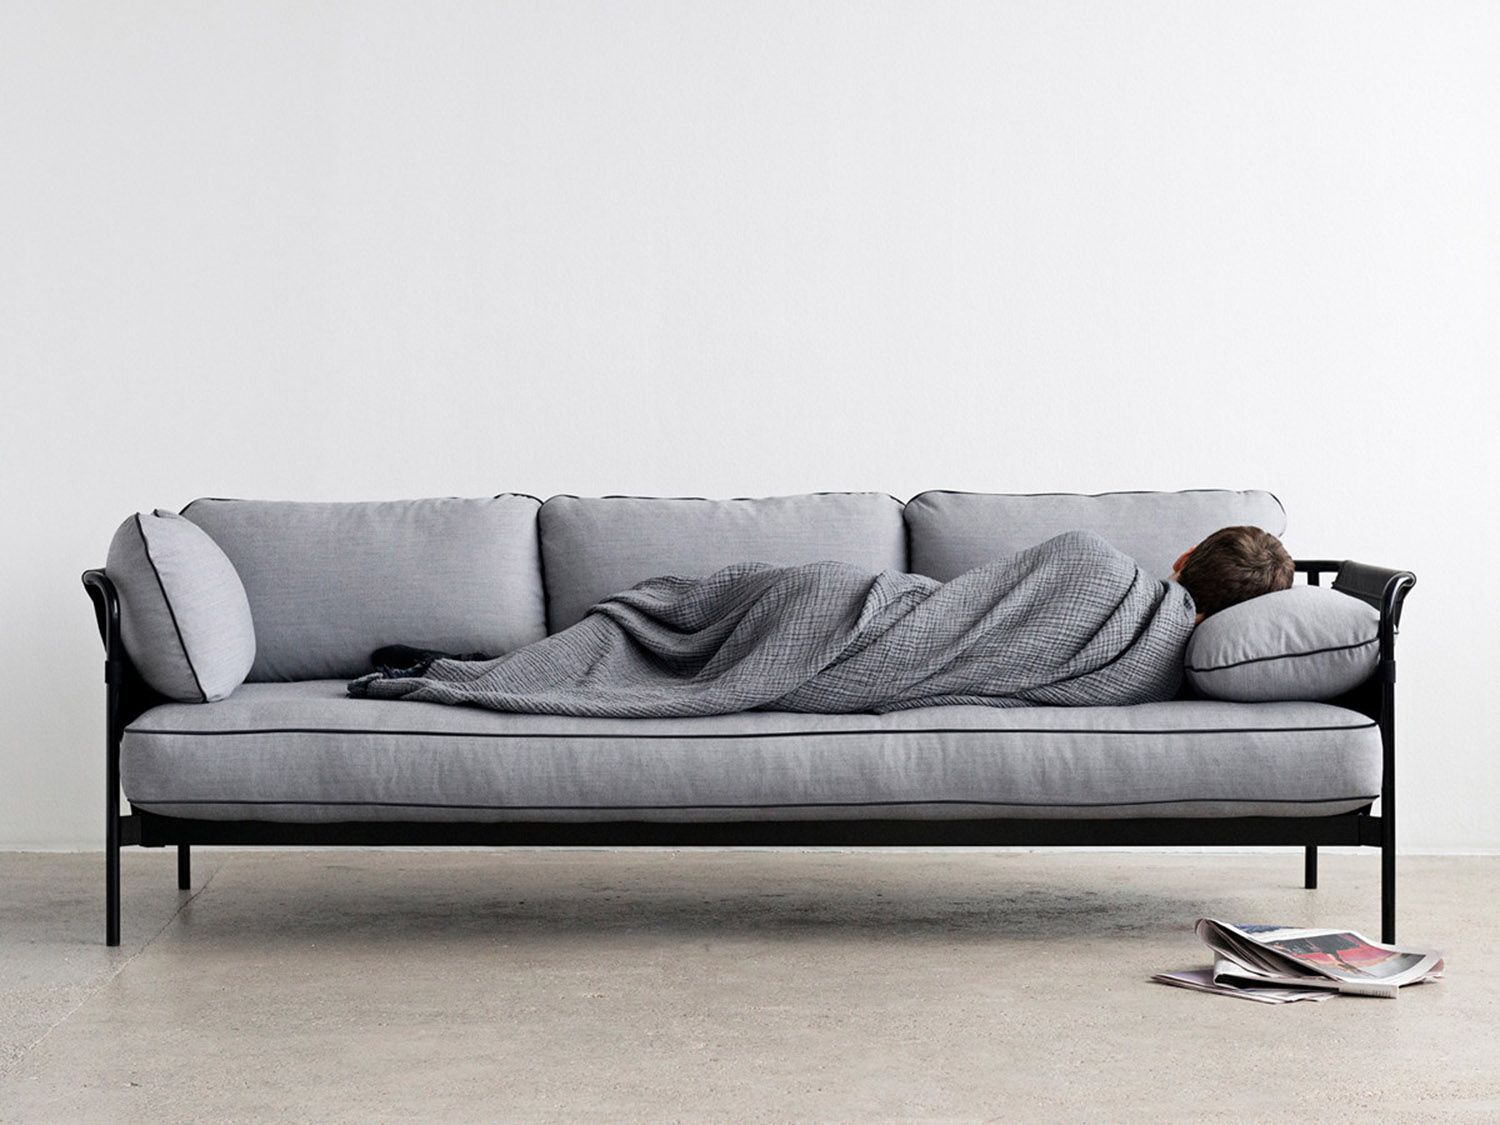 Can Sofa A Customisable Self Assembly Design That Can Be Put Together By Any Amateur At Home